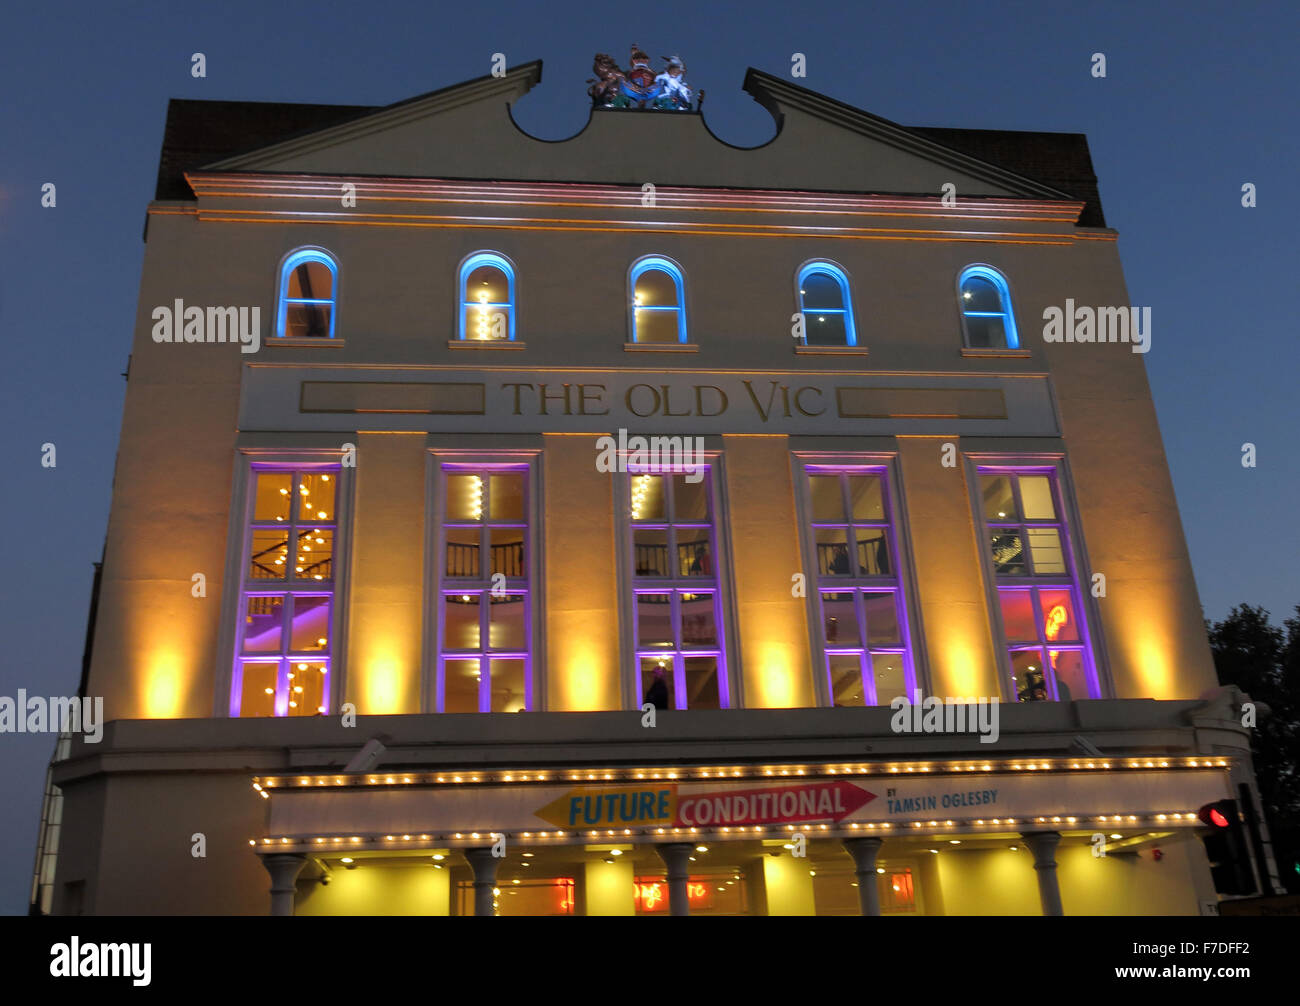 Road,GLC,night,nightshot,lit,bright,theater,architecture,art,attraction,venue,building,culture,entertainment,show,theatreland,tourist,travel,west,Lambeth,Greater,London,England,UK,LDN,United,Kingdom,cut,the,station,Royal,Coburg,Victoria,Hall,Grade,II*,listed,building,buildings,The Cut,GoTonySmith,Buy Pictures of,Buy Images Of